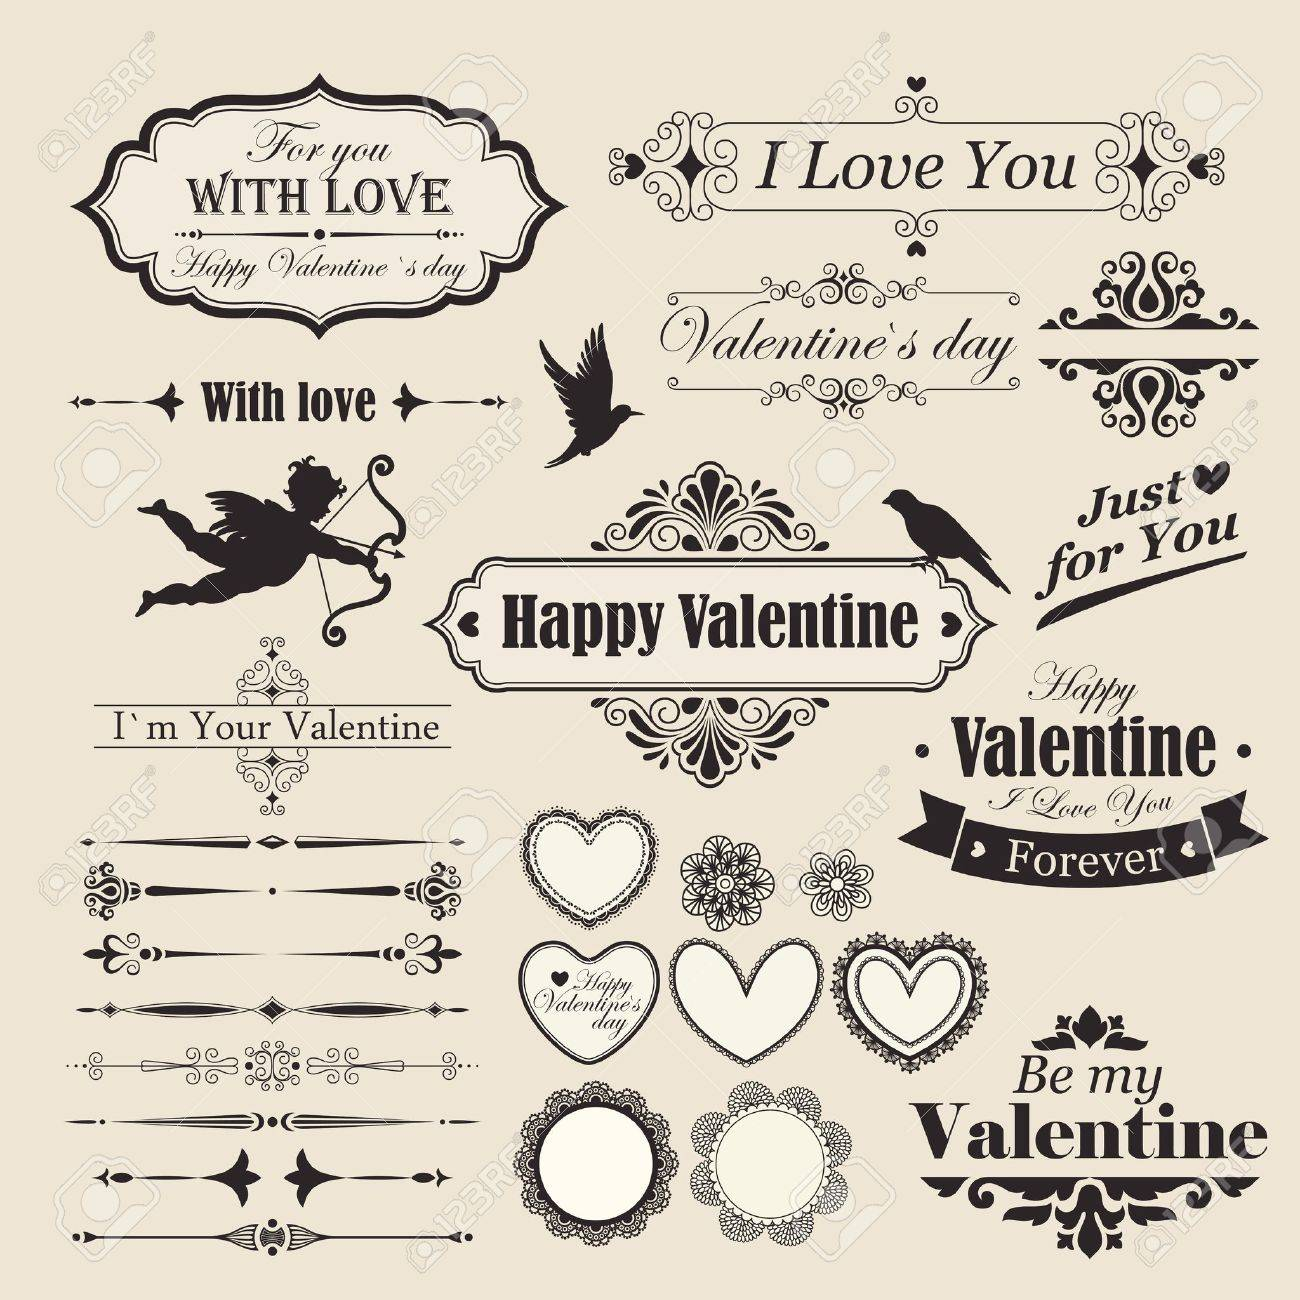 Valentine s Day vintage design elements and letterning Stock Vector - 14678040